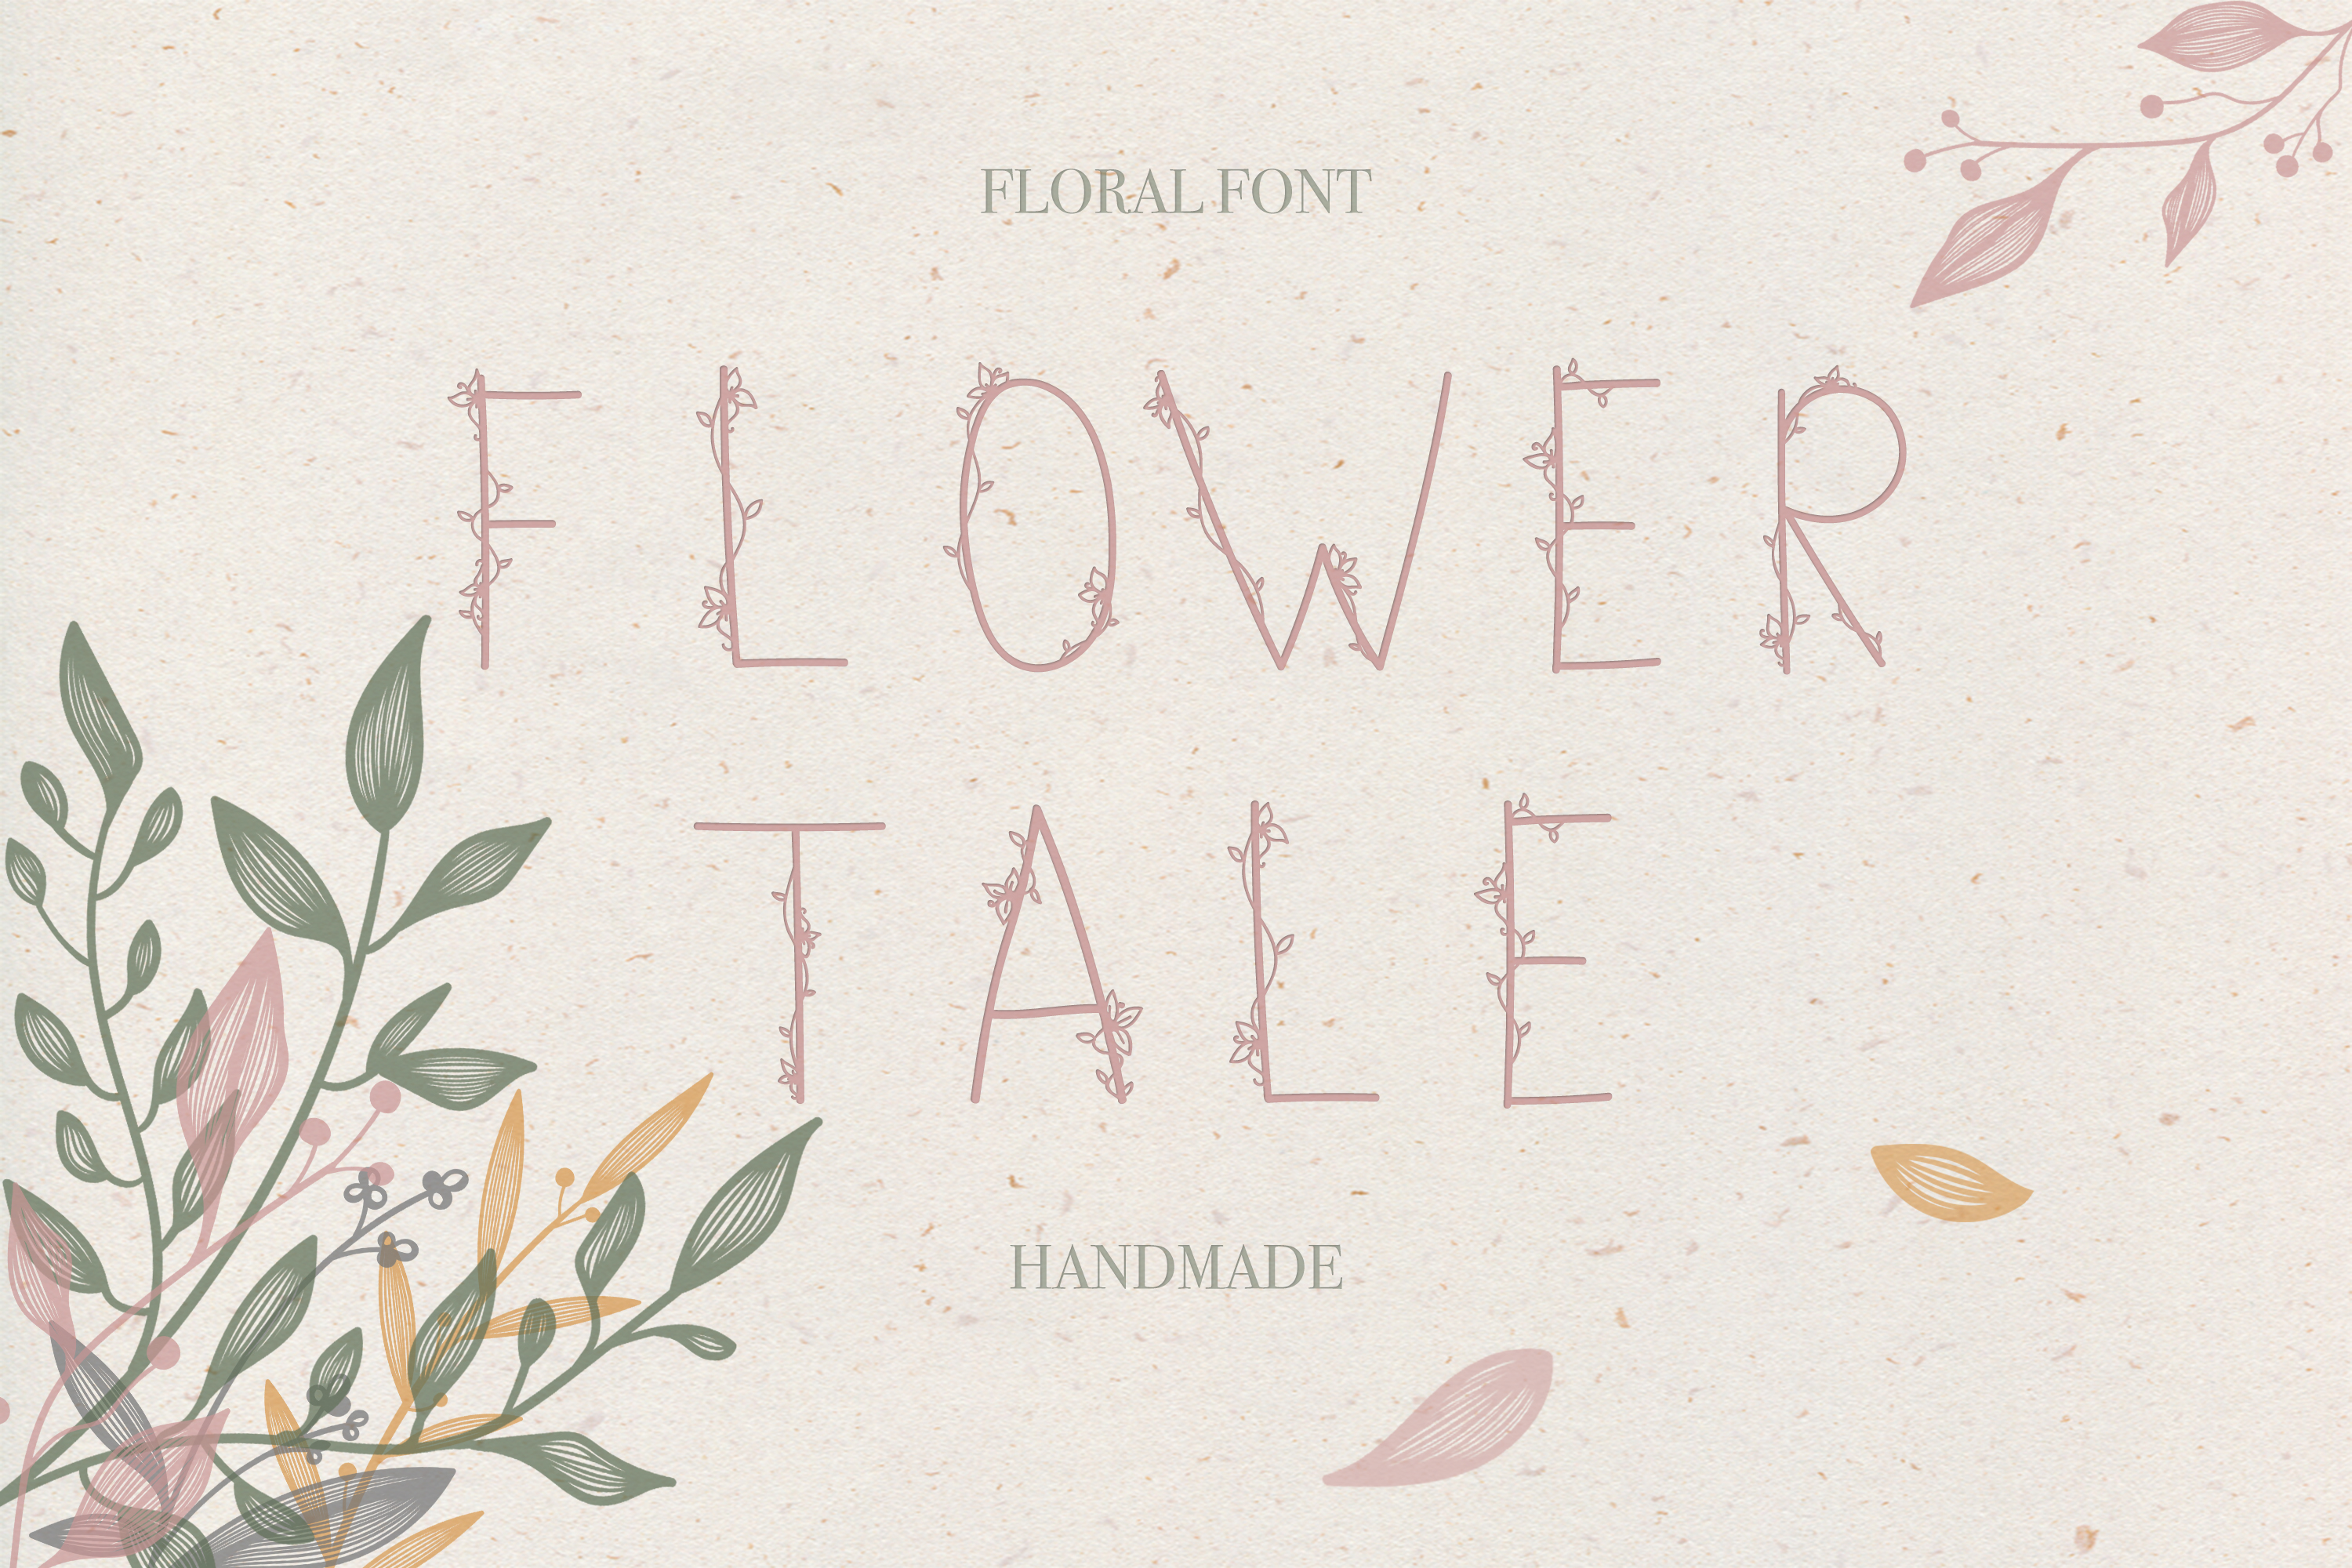 Flower Tale - Handwritten Floral Font example image 1